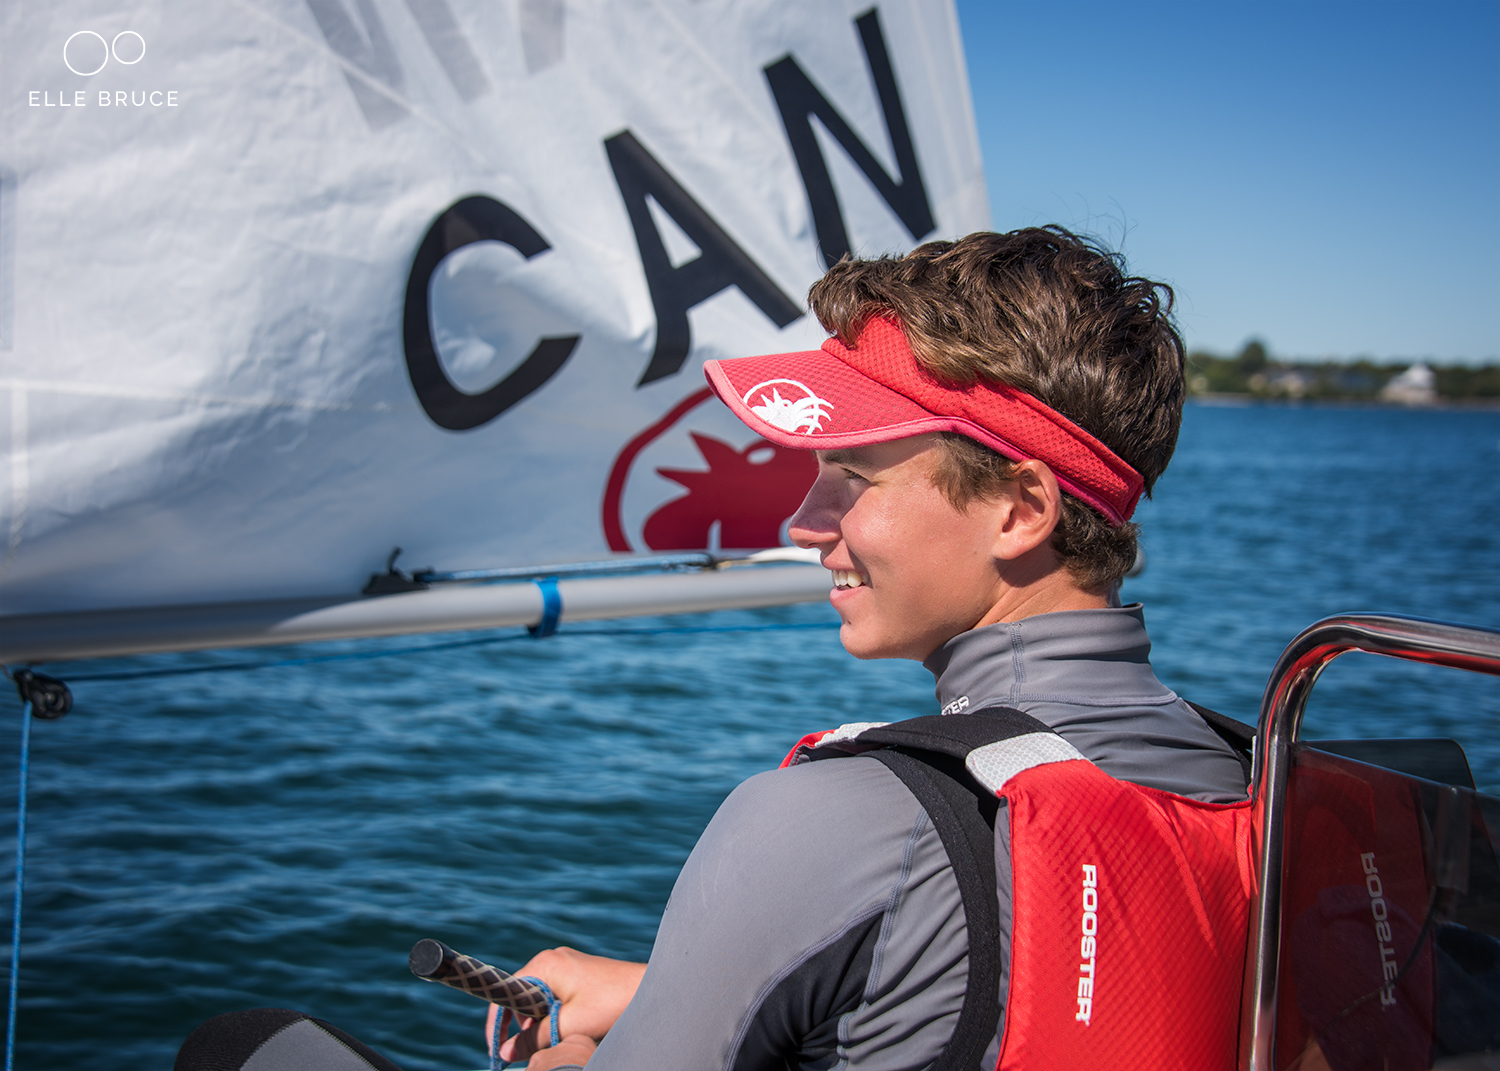 Elle Bruce -LIAM BRUCE - SAILING LASER RADIAL - FALL CORK - ROOSTER SAILING GEAR 2 - 20160925-8774-WM-1200.jpg